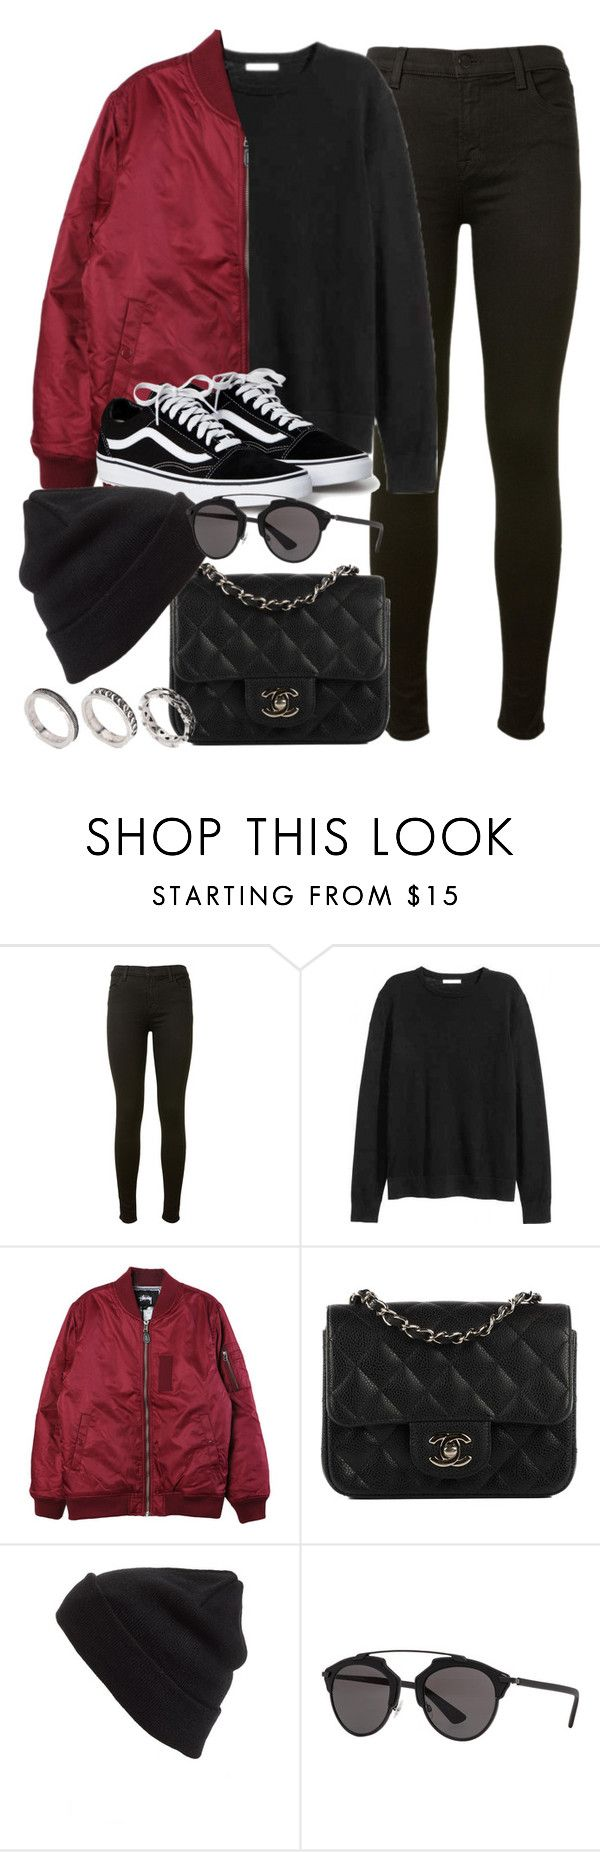 """""""Sin título #11985"""" by vany-alvarado ❤ liked on Polyvore featuring J Brand, H&M, Stussy, Chanel, BP., Christian Dior and ASOS"""